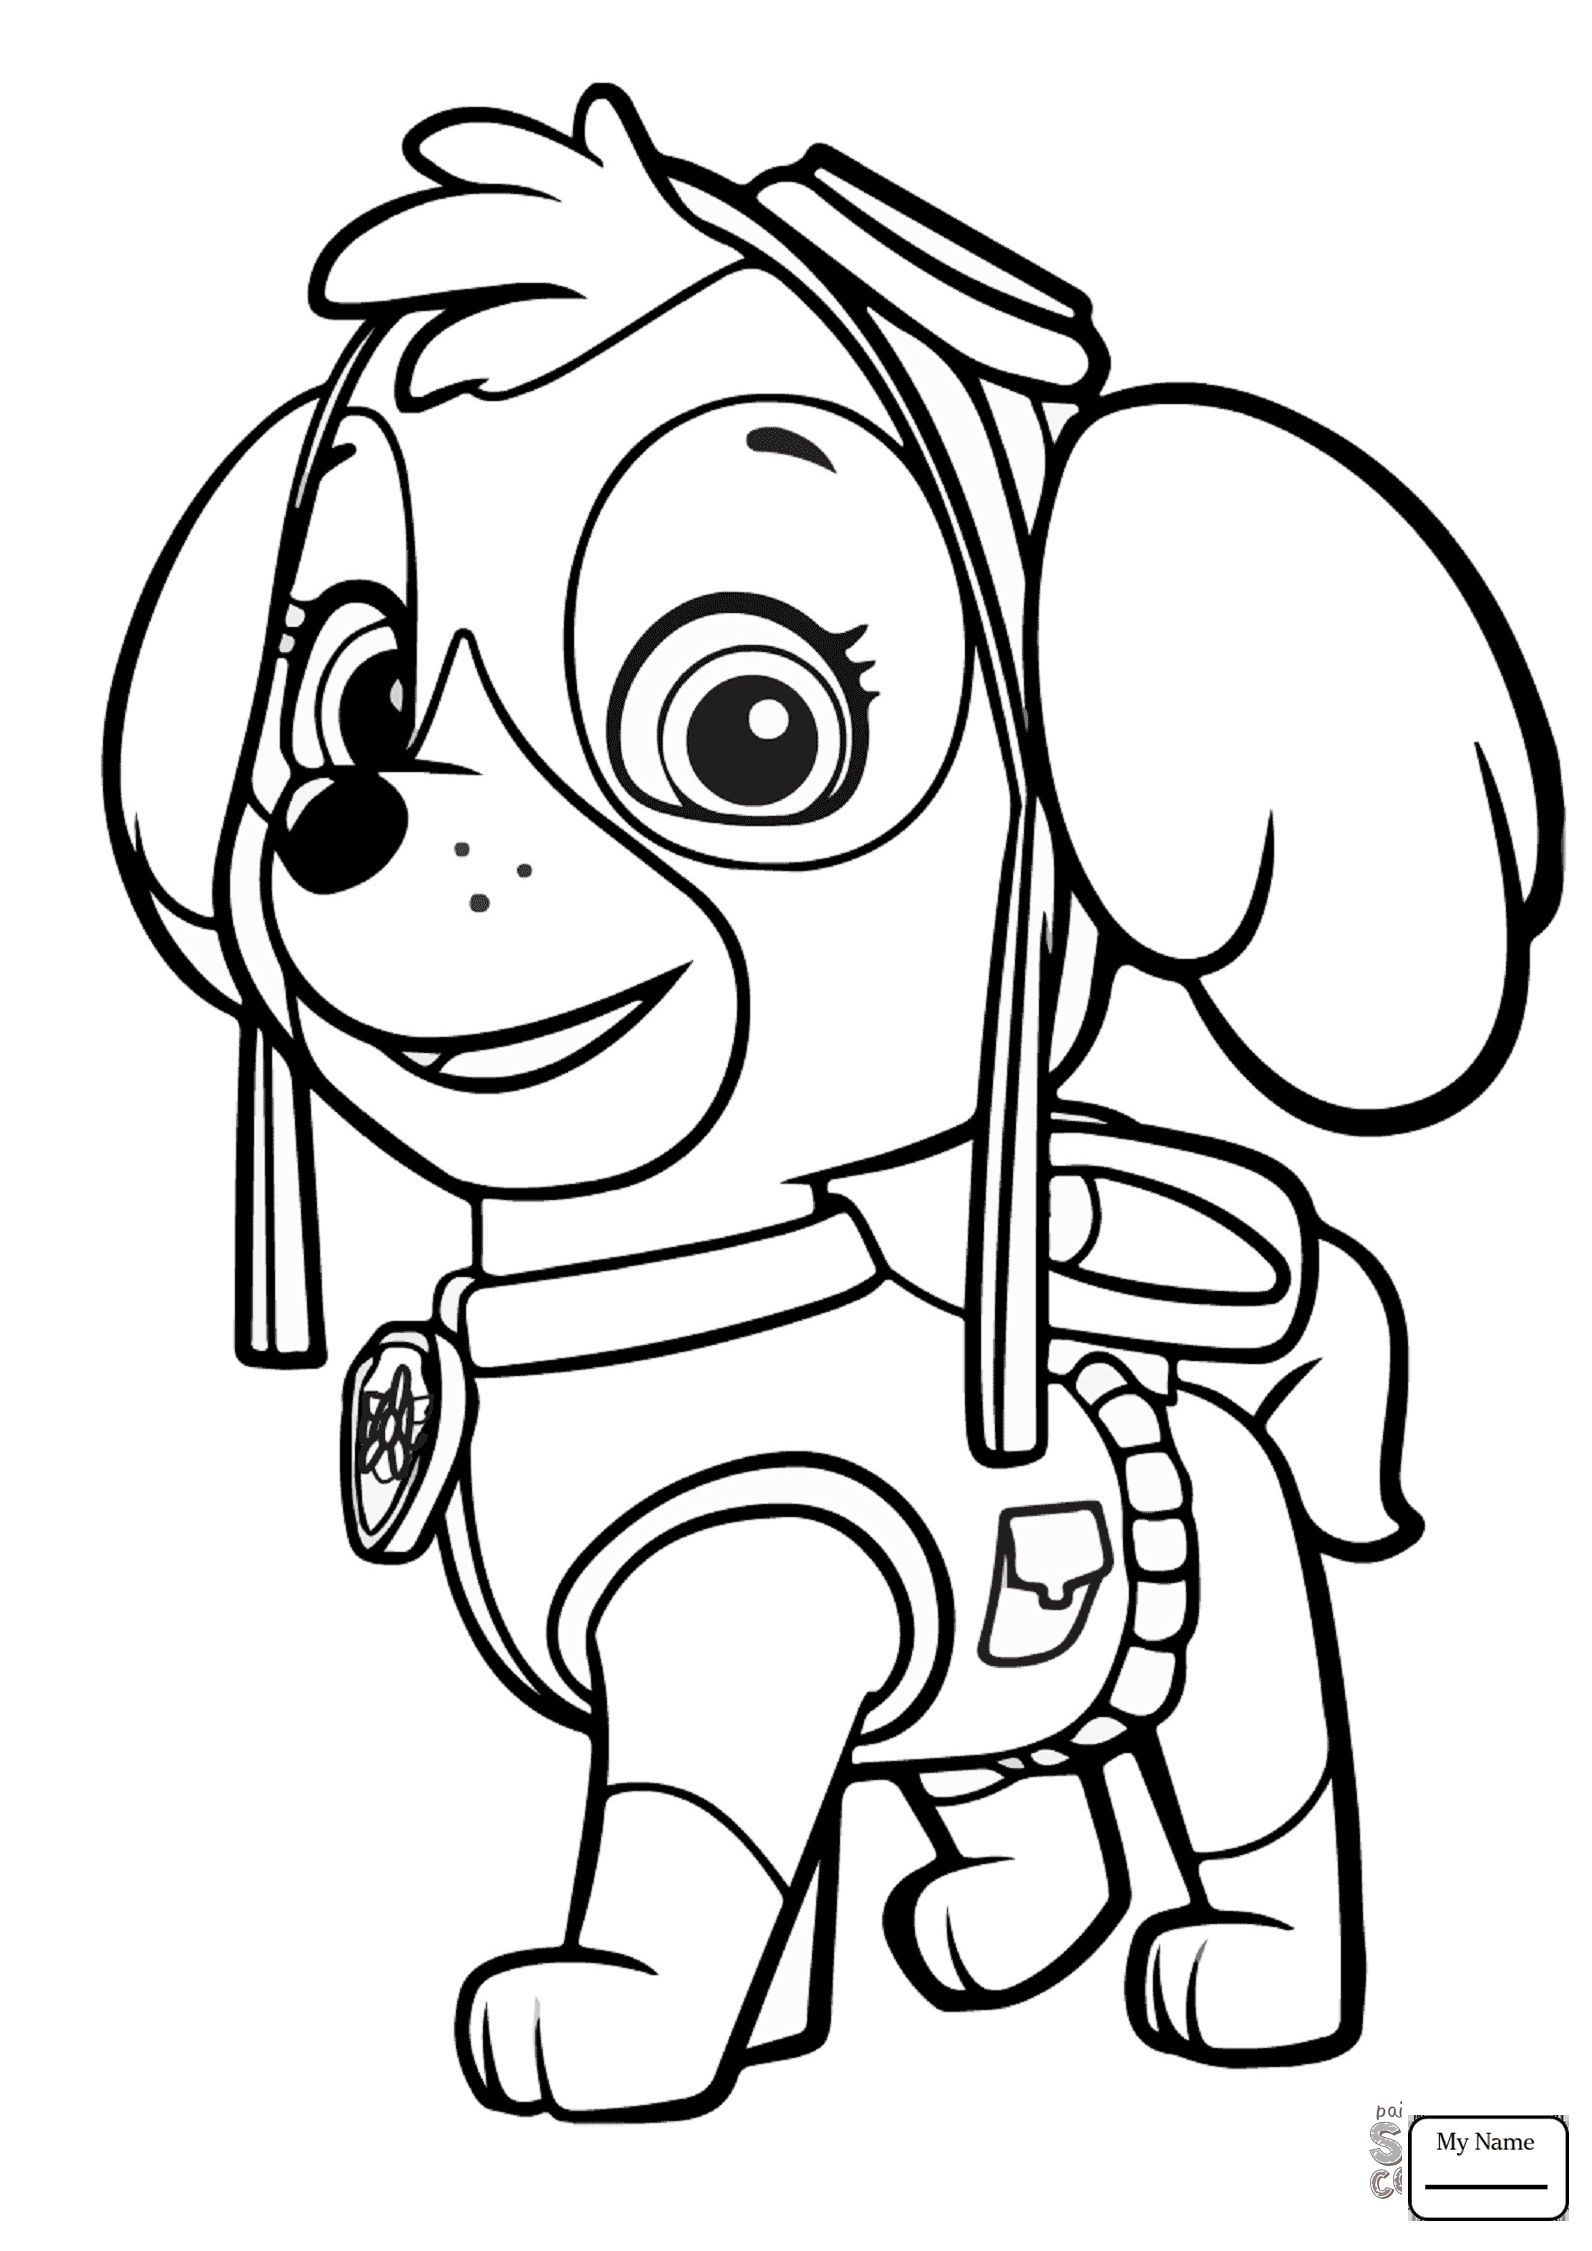 everest paw patrol coloring everest drawing at getdrawings free download everest coloring paw patrol